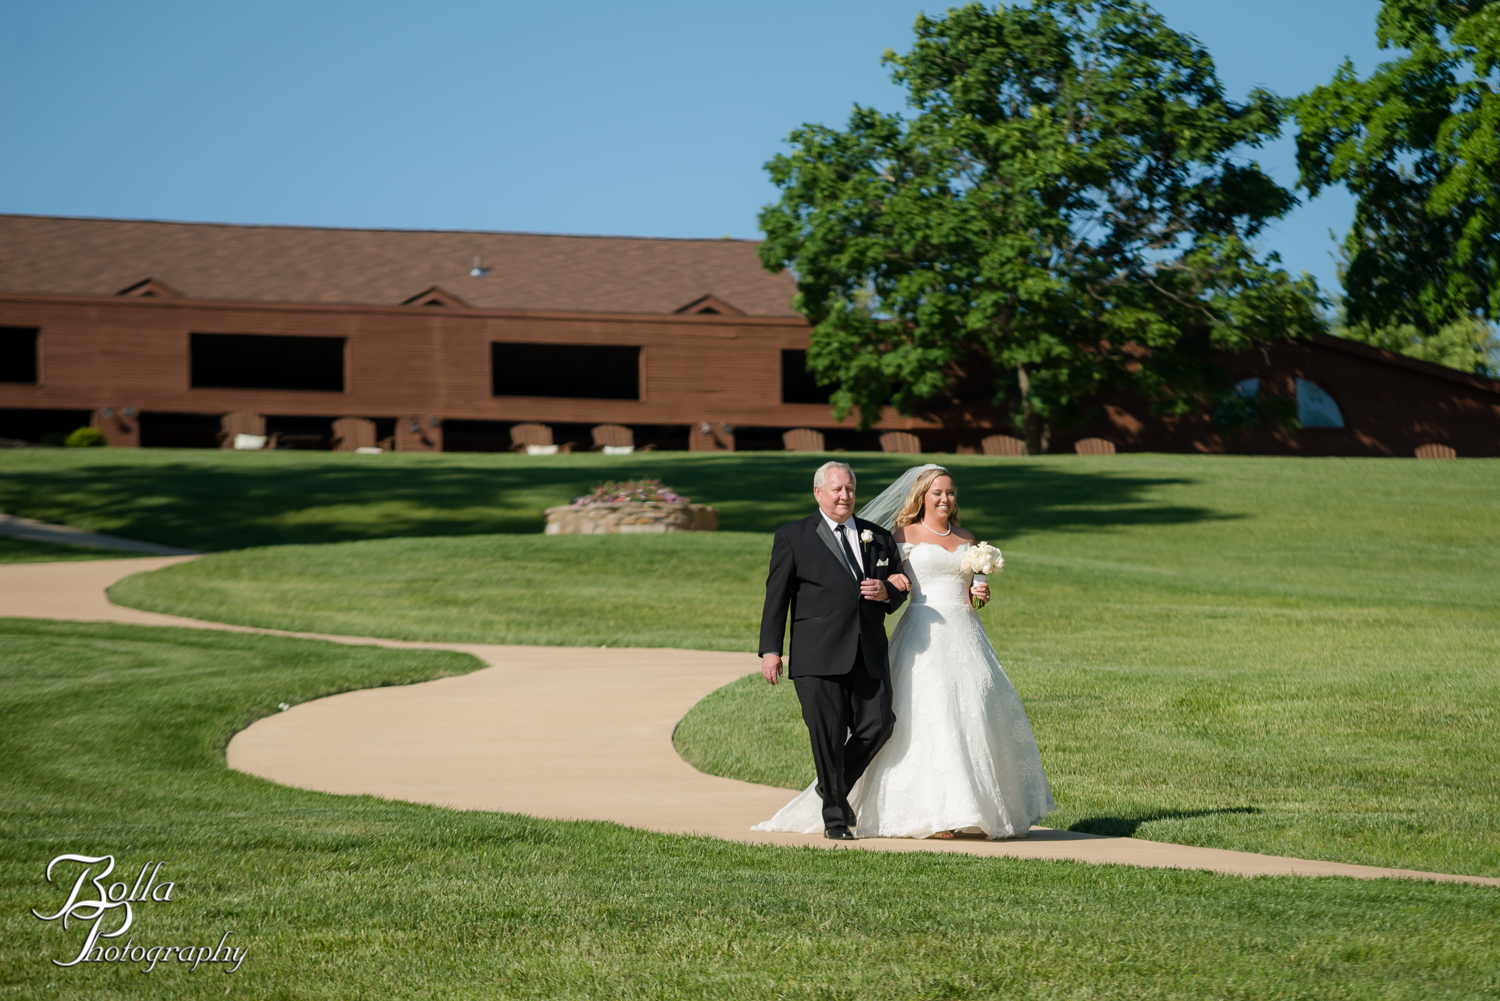 Bolla_Photography_St_Louis_wedding_photographer-0272.jpg